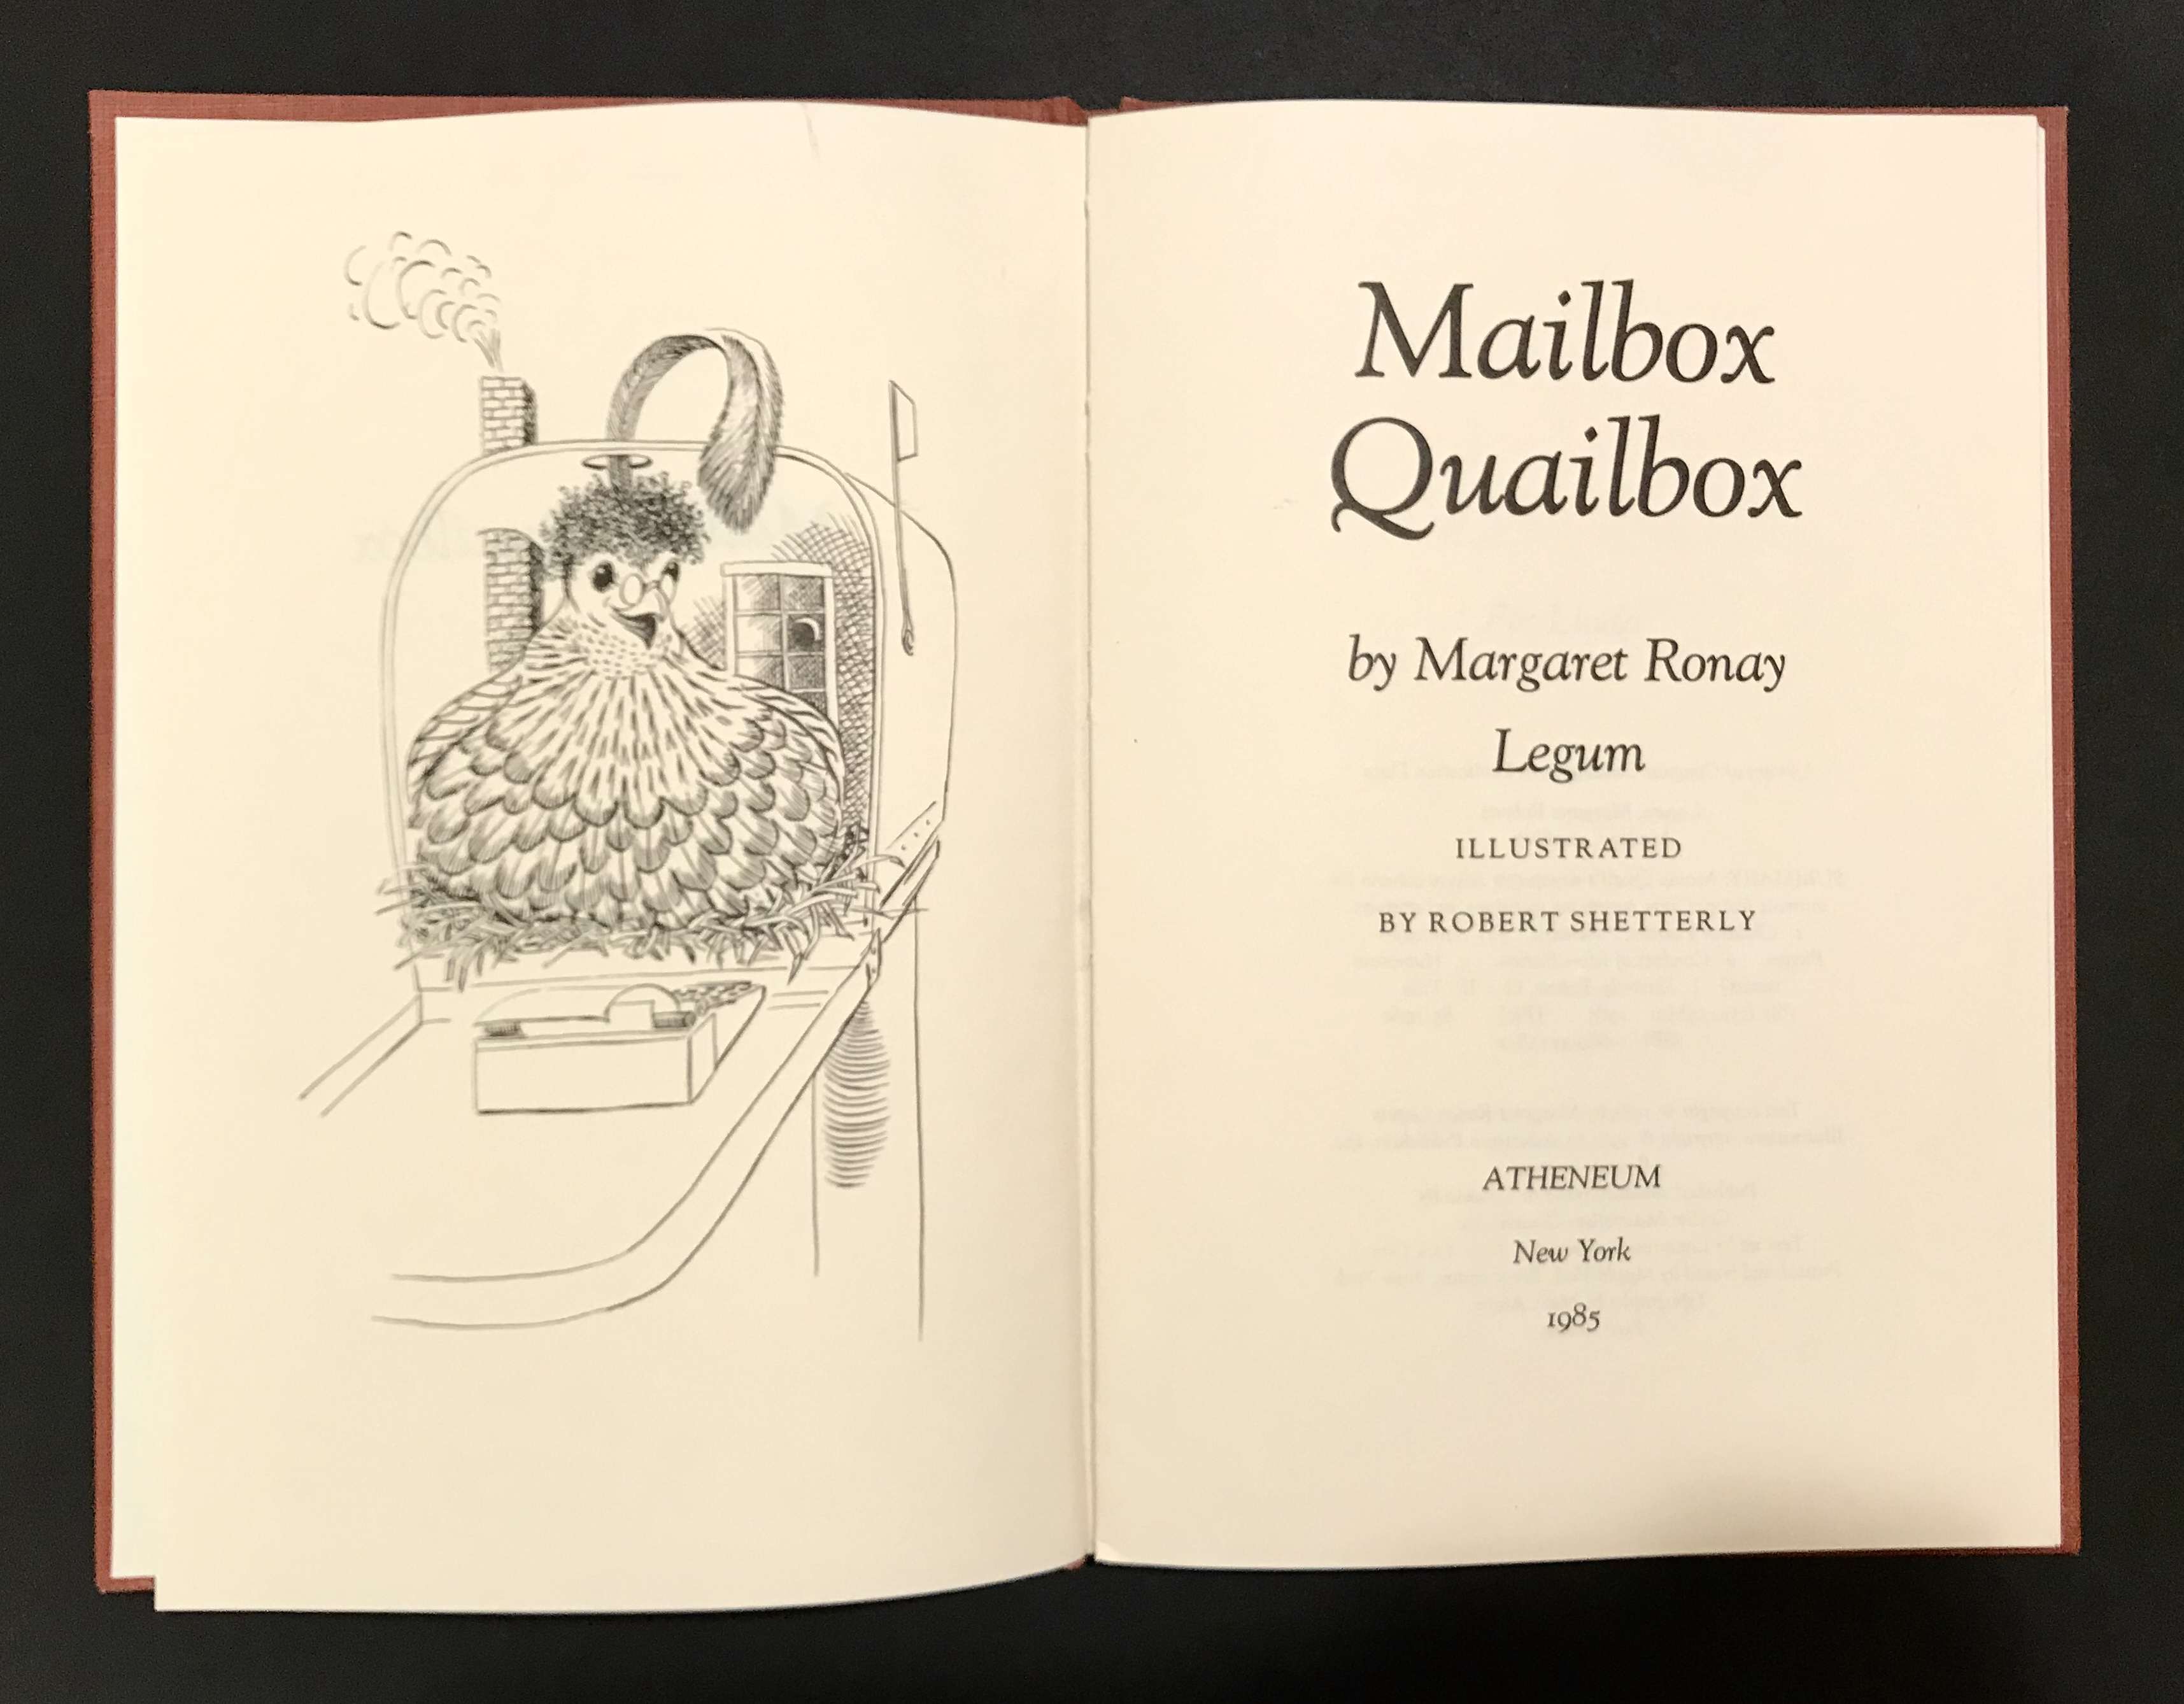 Mailbox Quailbox